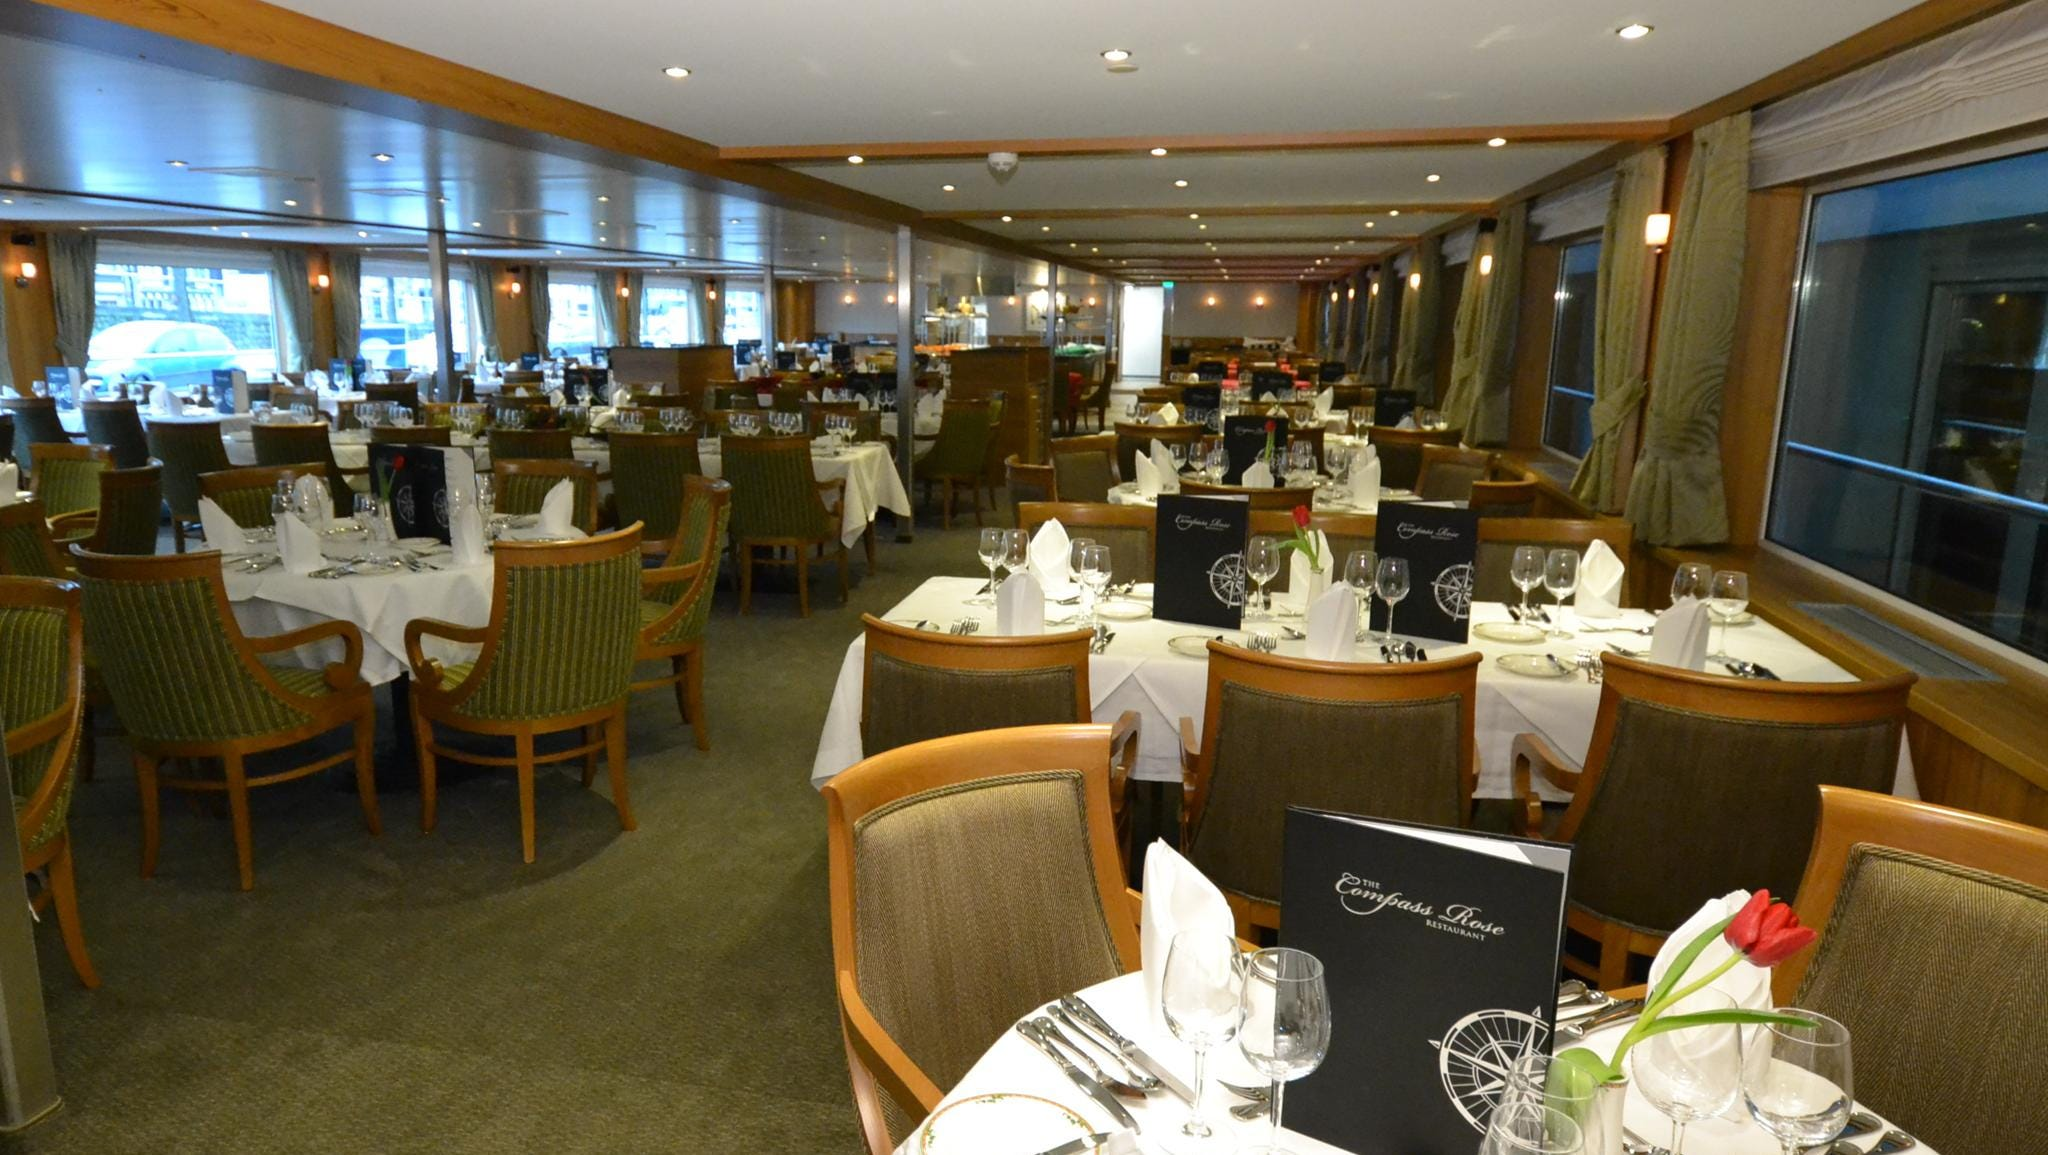 Serving breakfast, lunch and dinner, the main dining room, called the Compass Rose Restaurant, has capacity to seat every passenger on the ship at once.